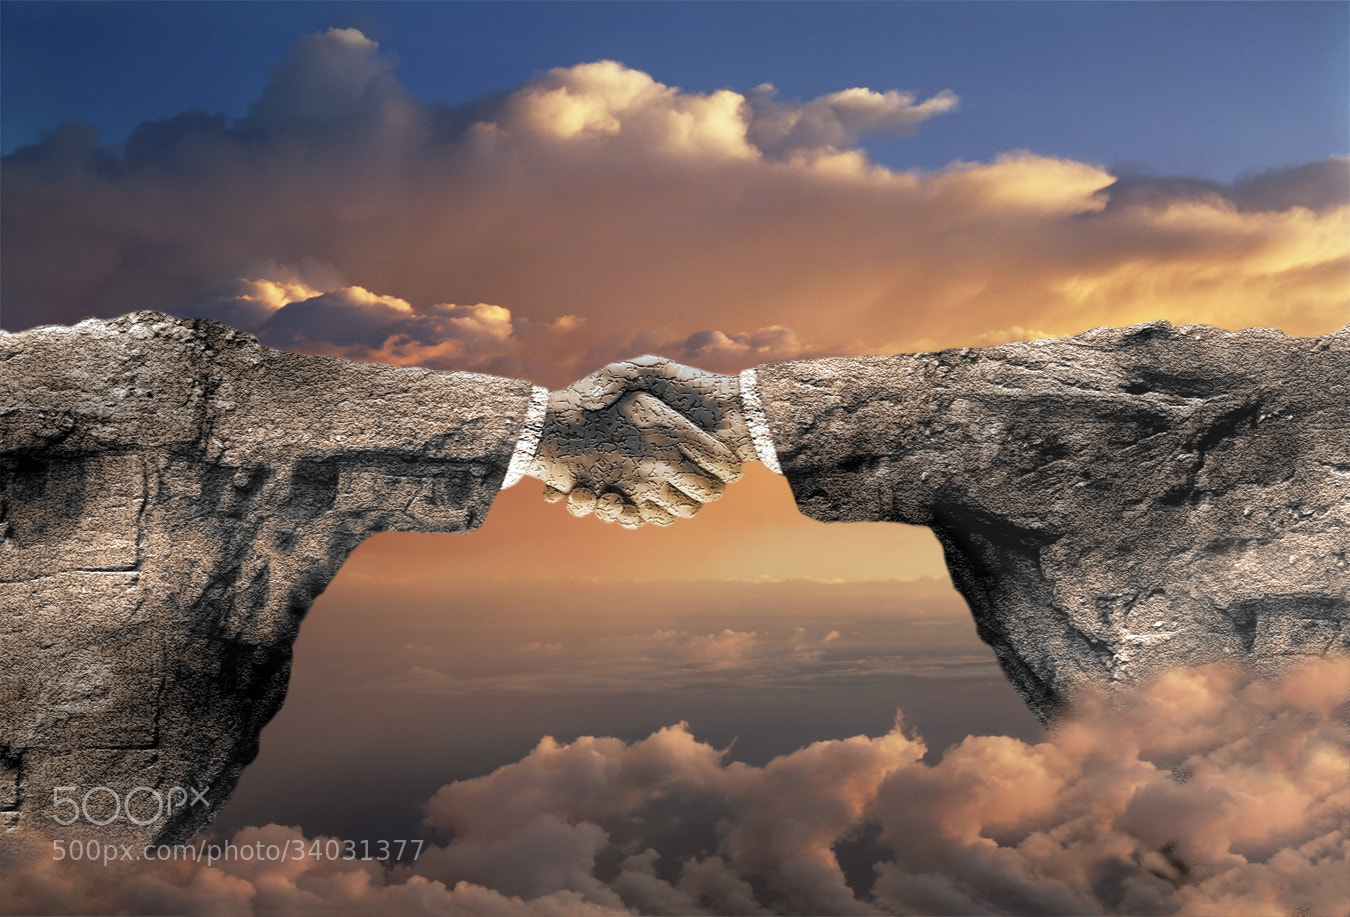 Photograph rock solid relationship by michael agliolo on 500px